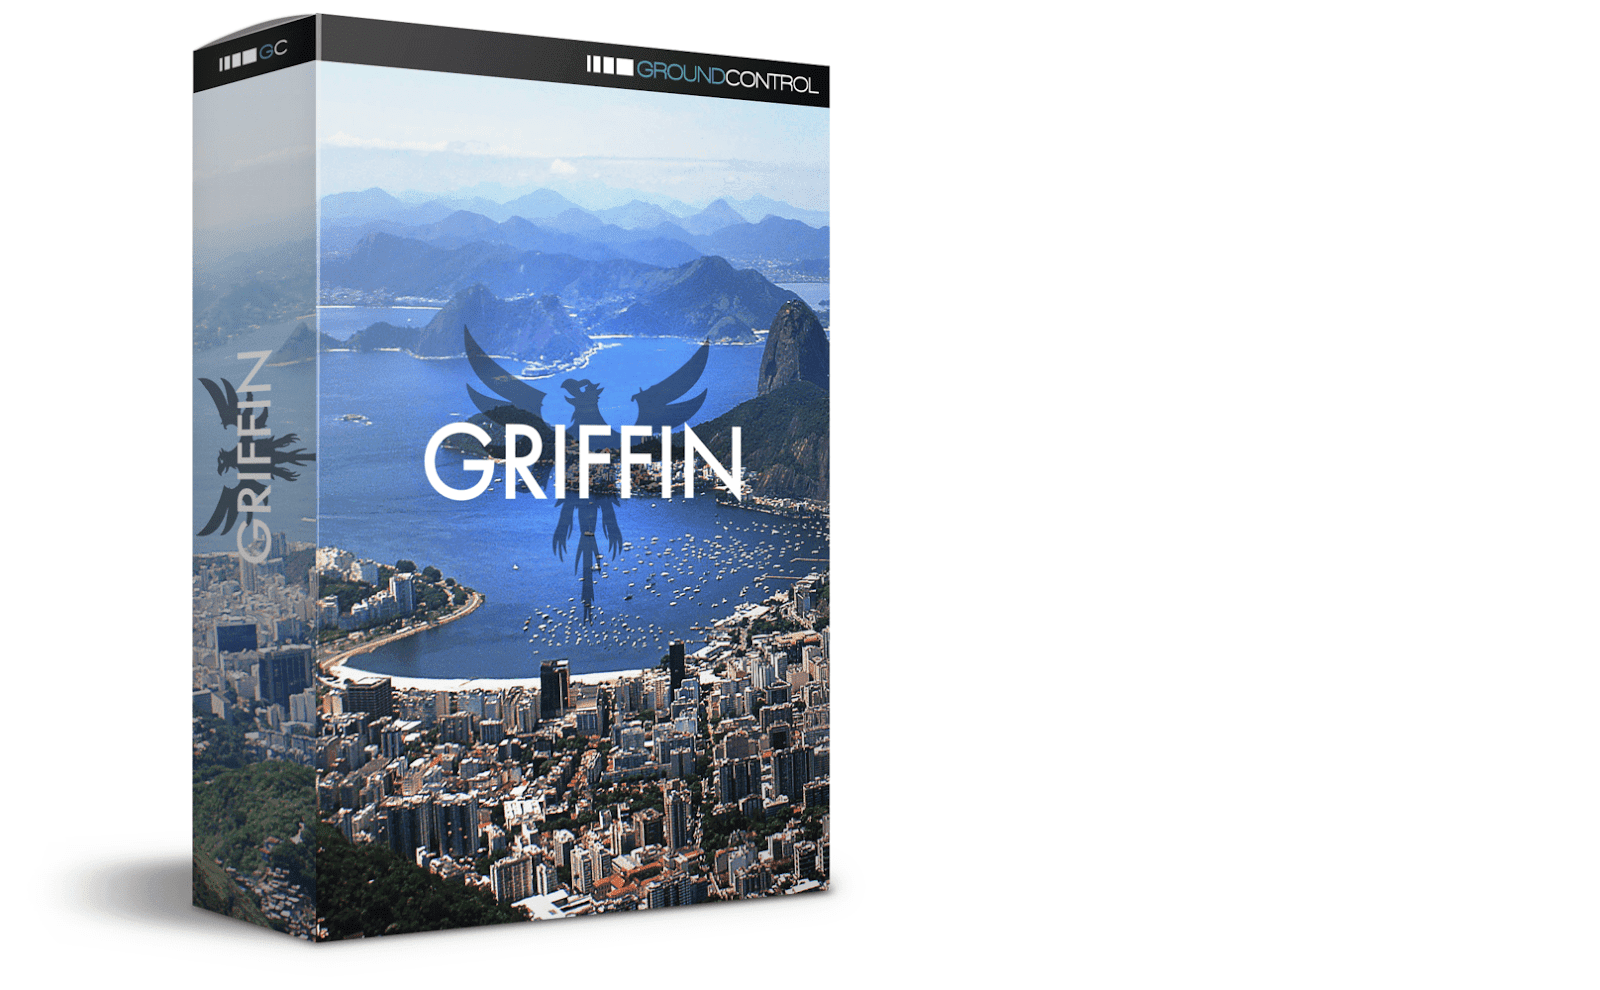 Ground Control - Griffin LUTS - Free download - Free Video Effects